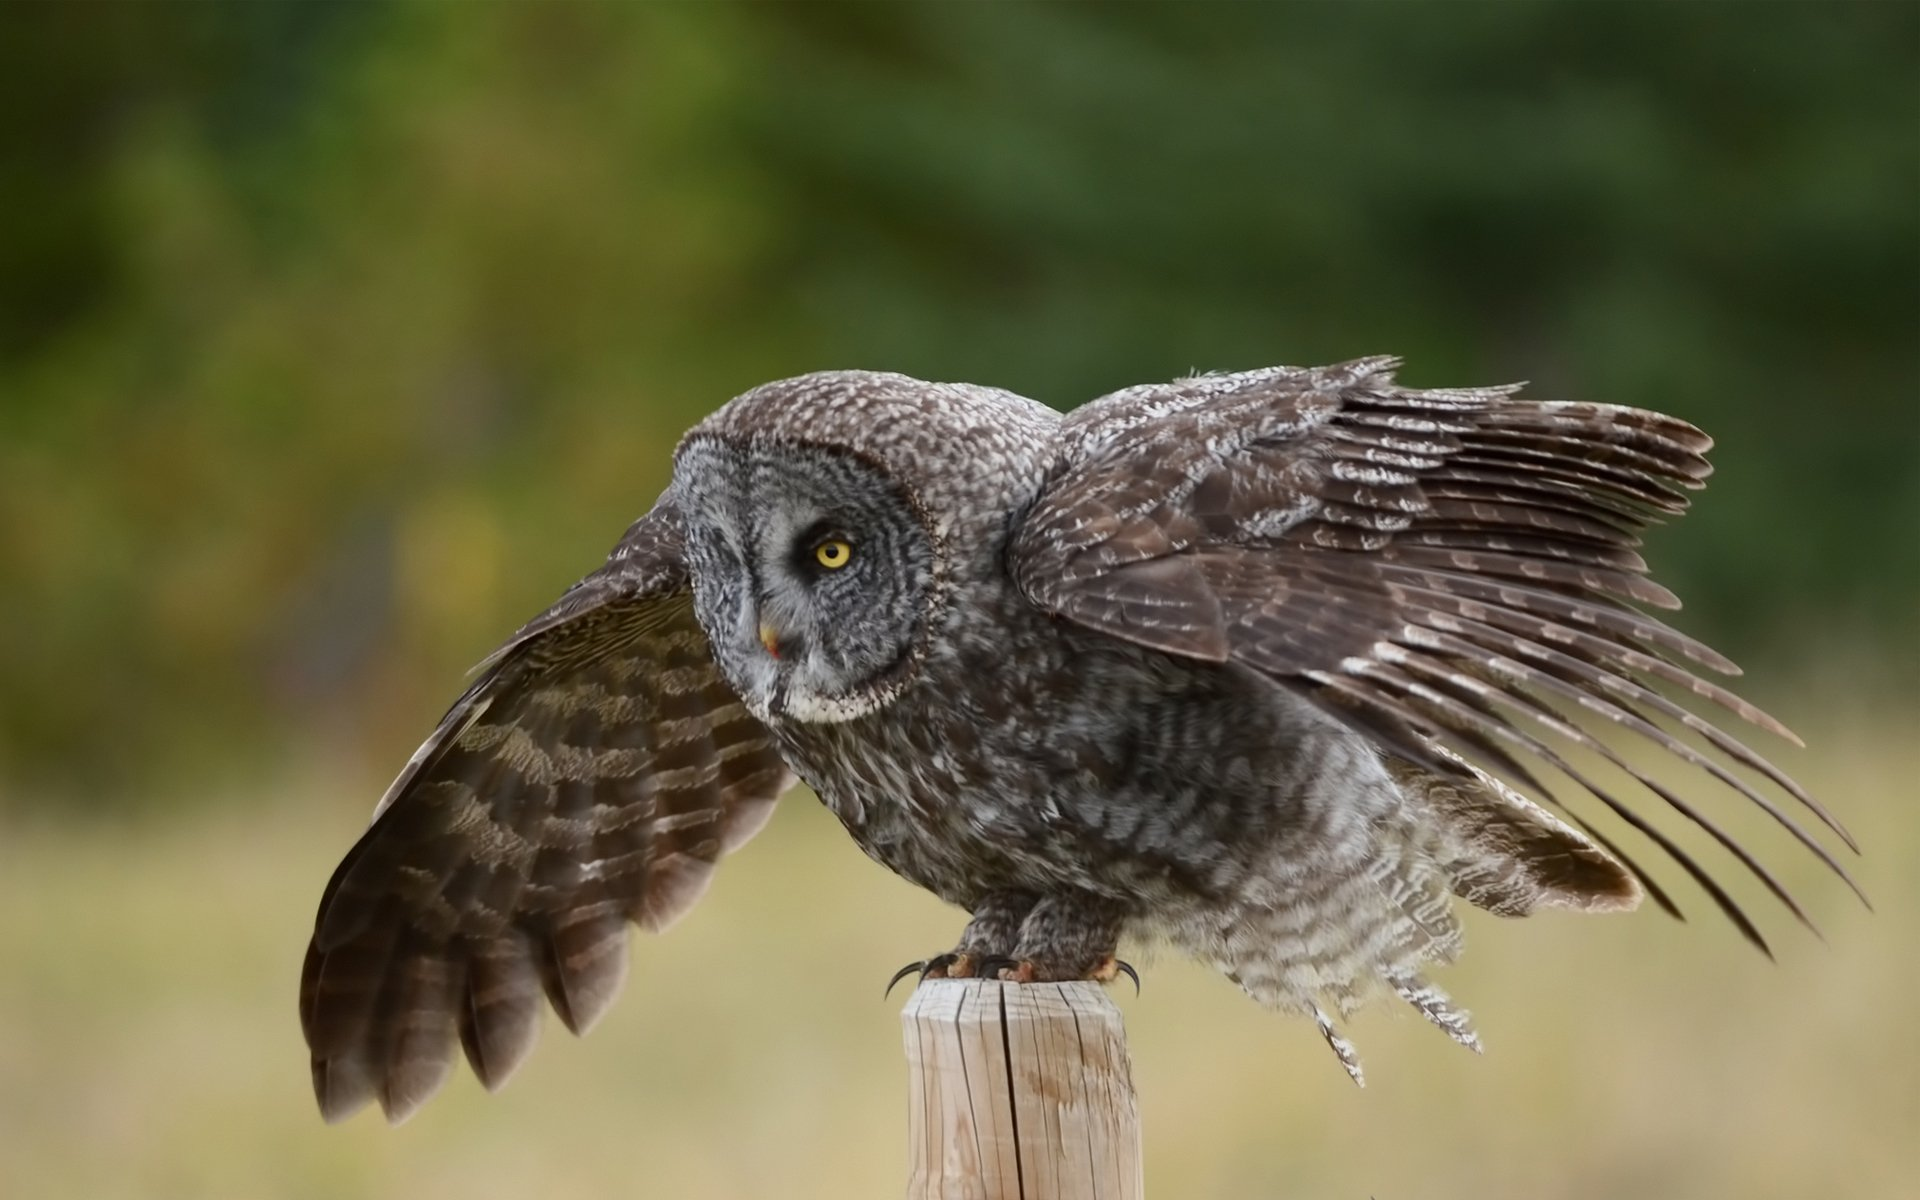 Great Grey Owl Hd Wallpaper Background Image 1920x1200